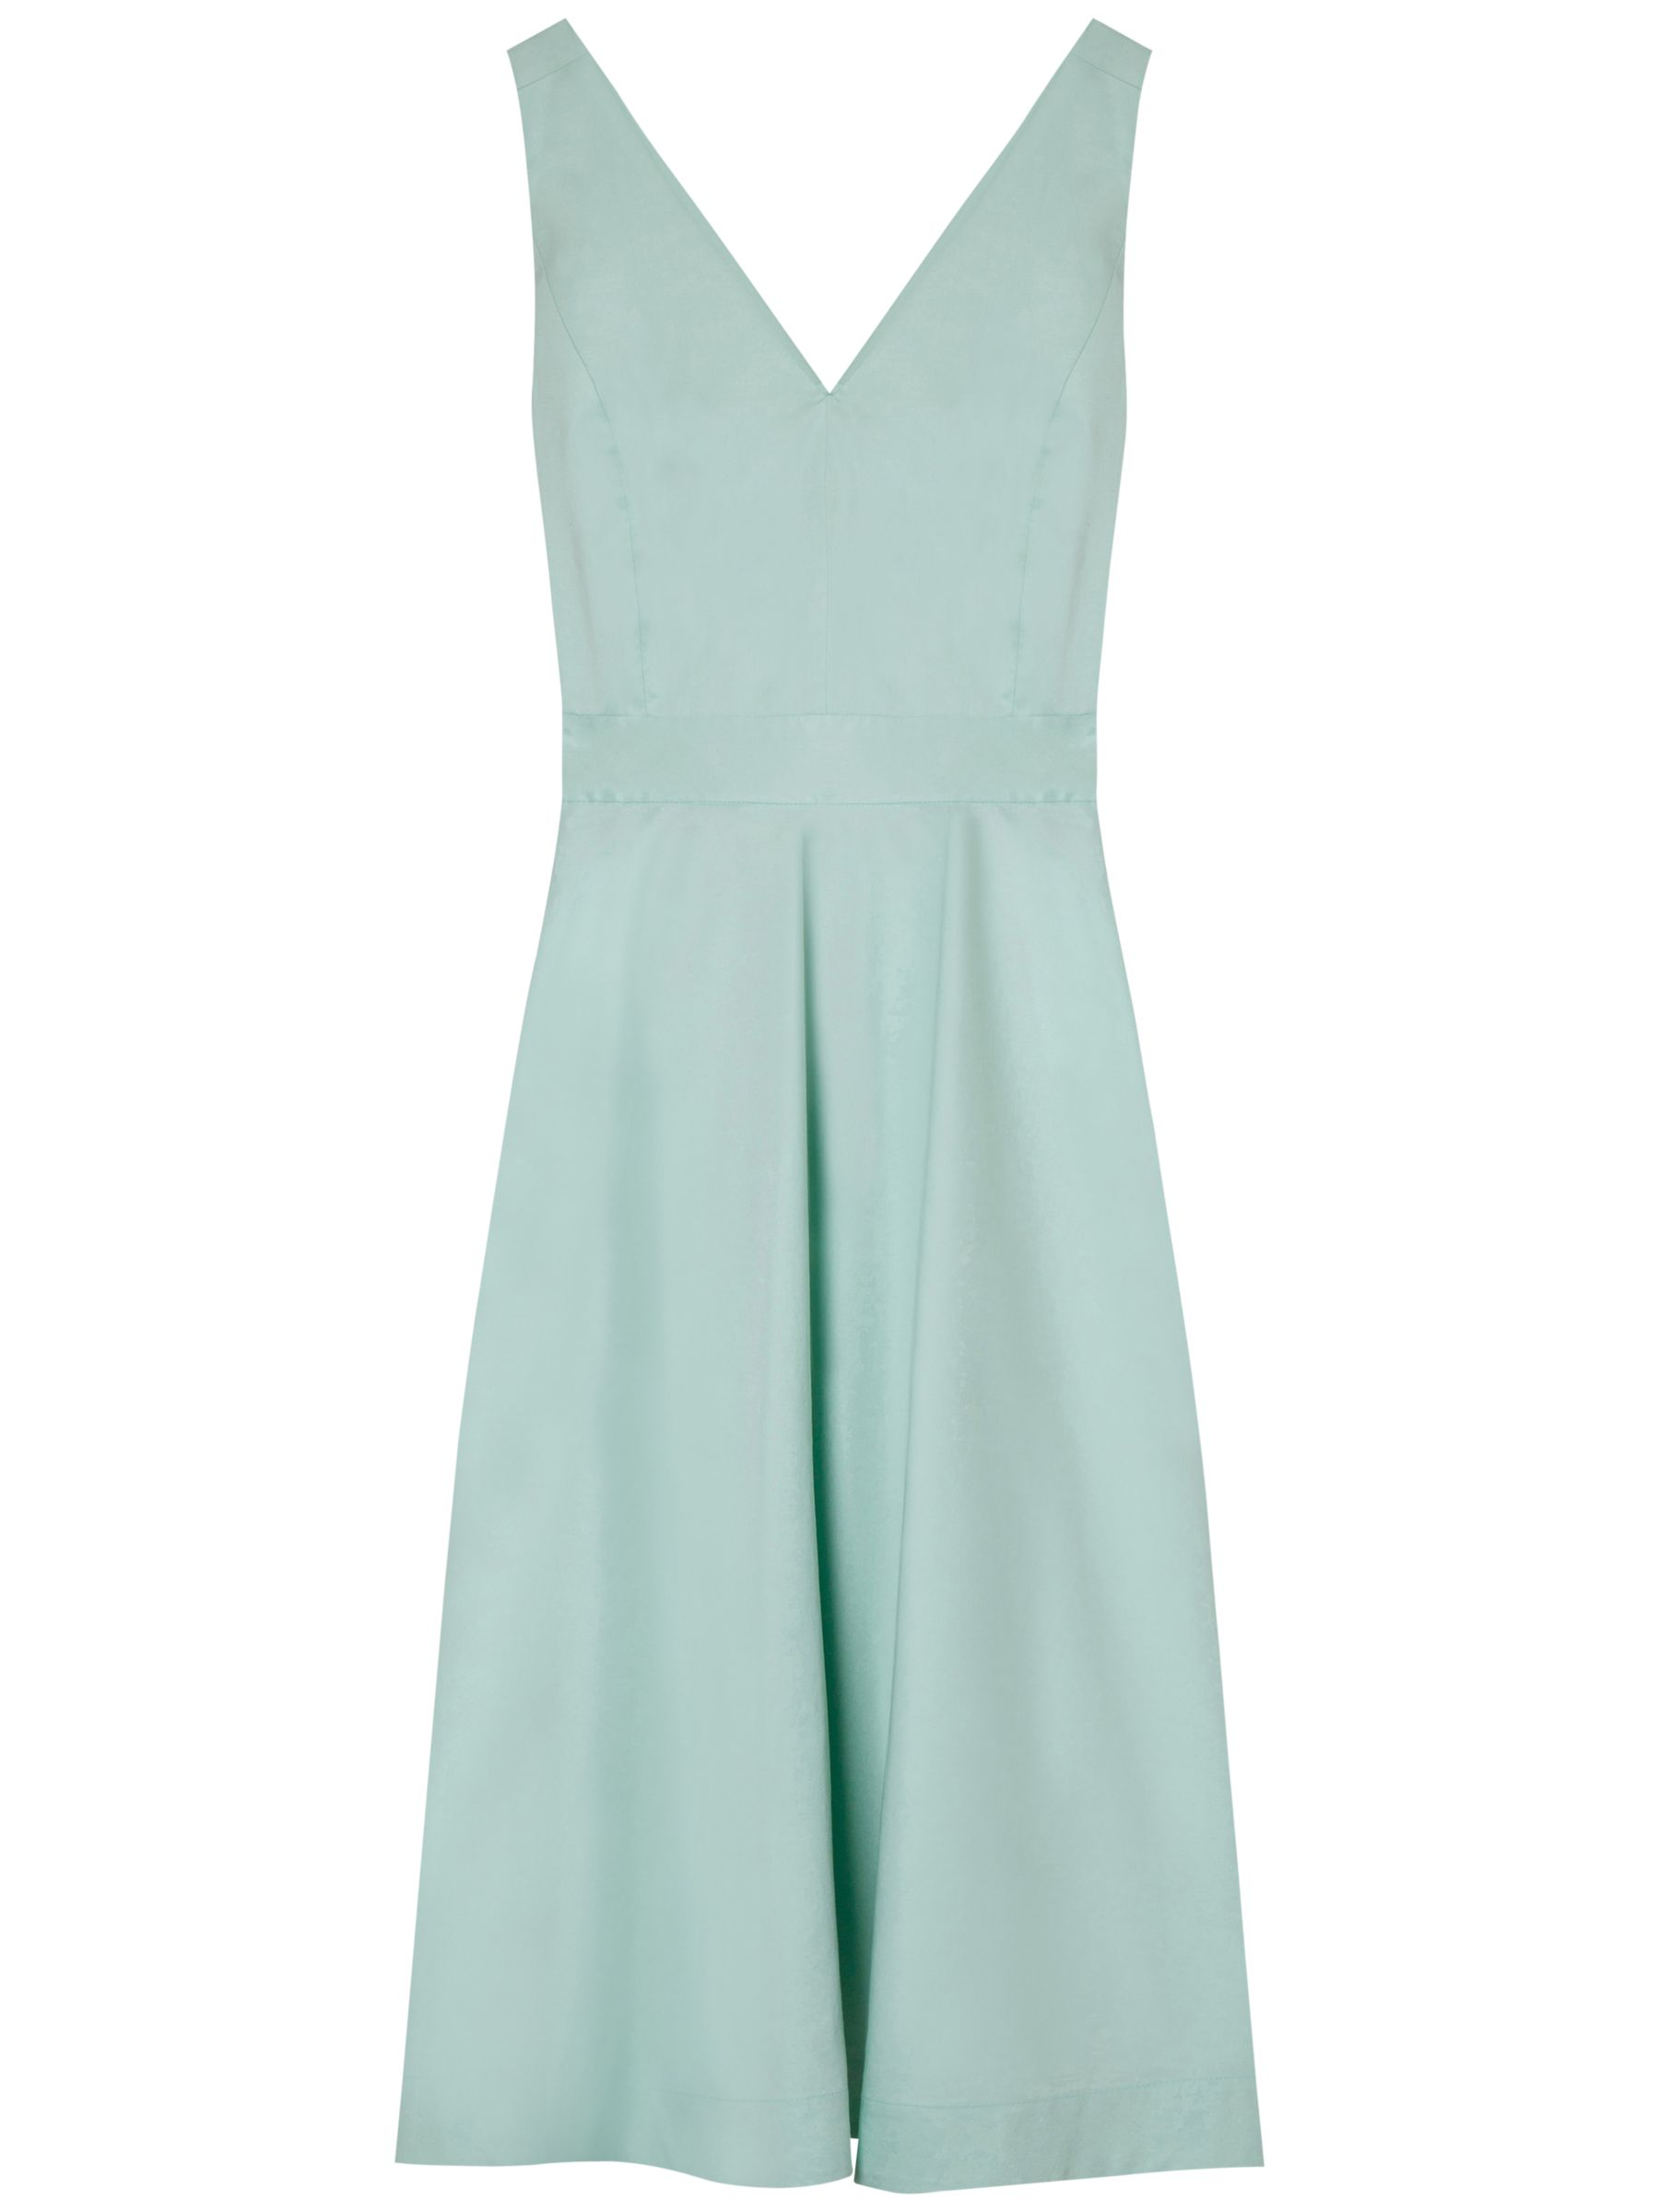 gerard darel ante dress aqua, gerard, darel, ante, dress, aqua, gerard darel, 10|16|14|18|12|8, women, womens dresses, gifts, wedding, wedding clothing, female guests, adult bridesmaids, 1935422